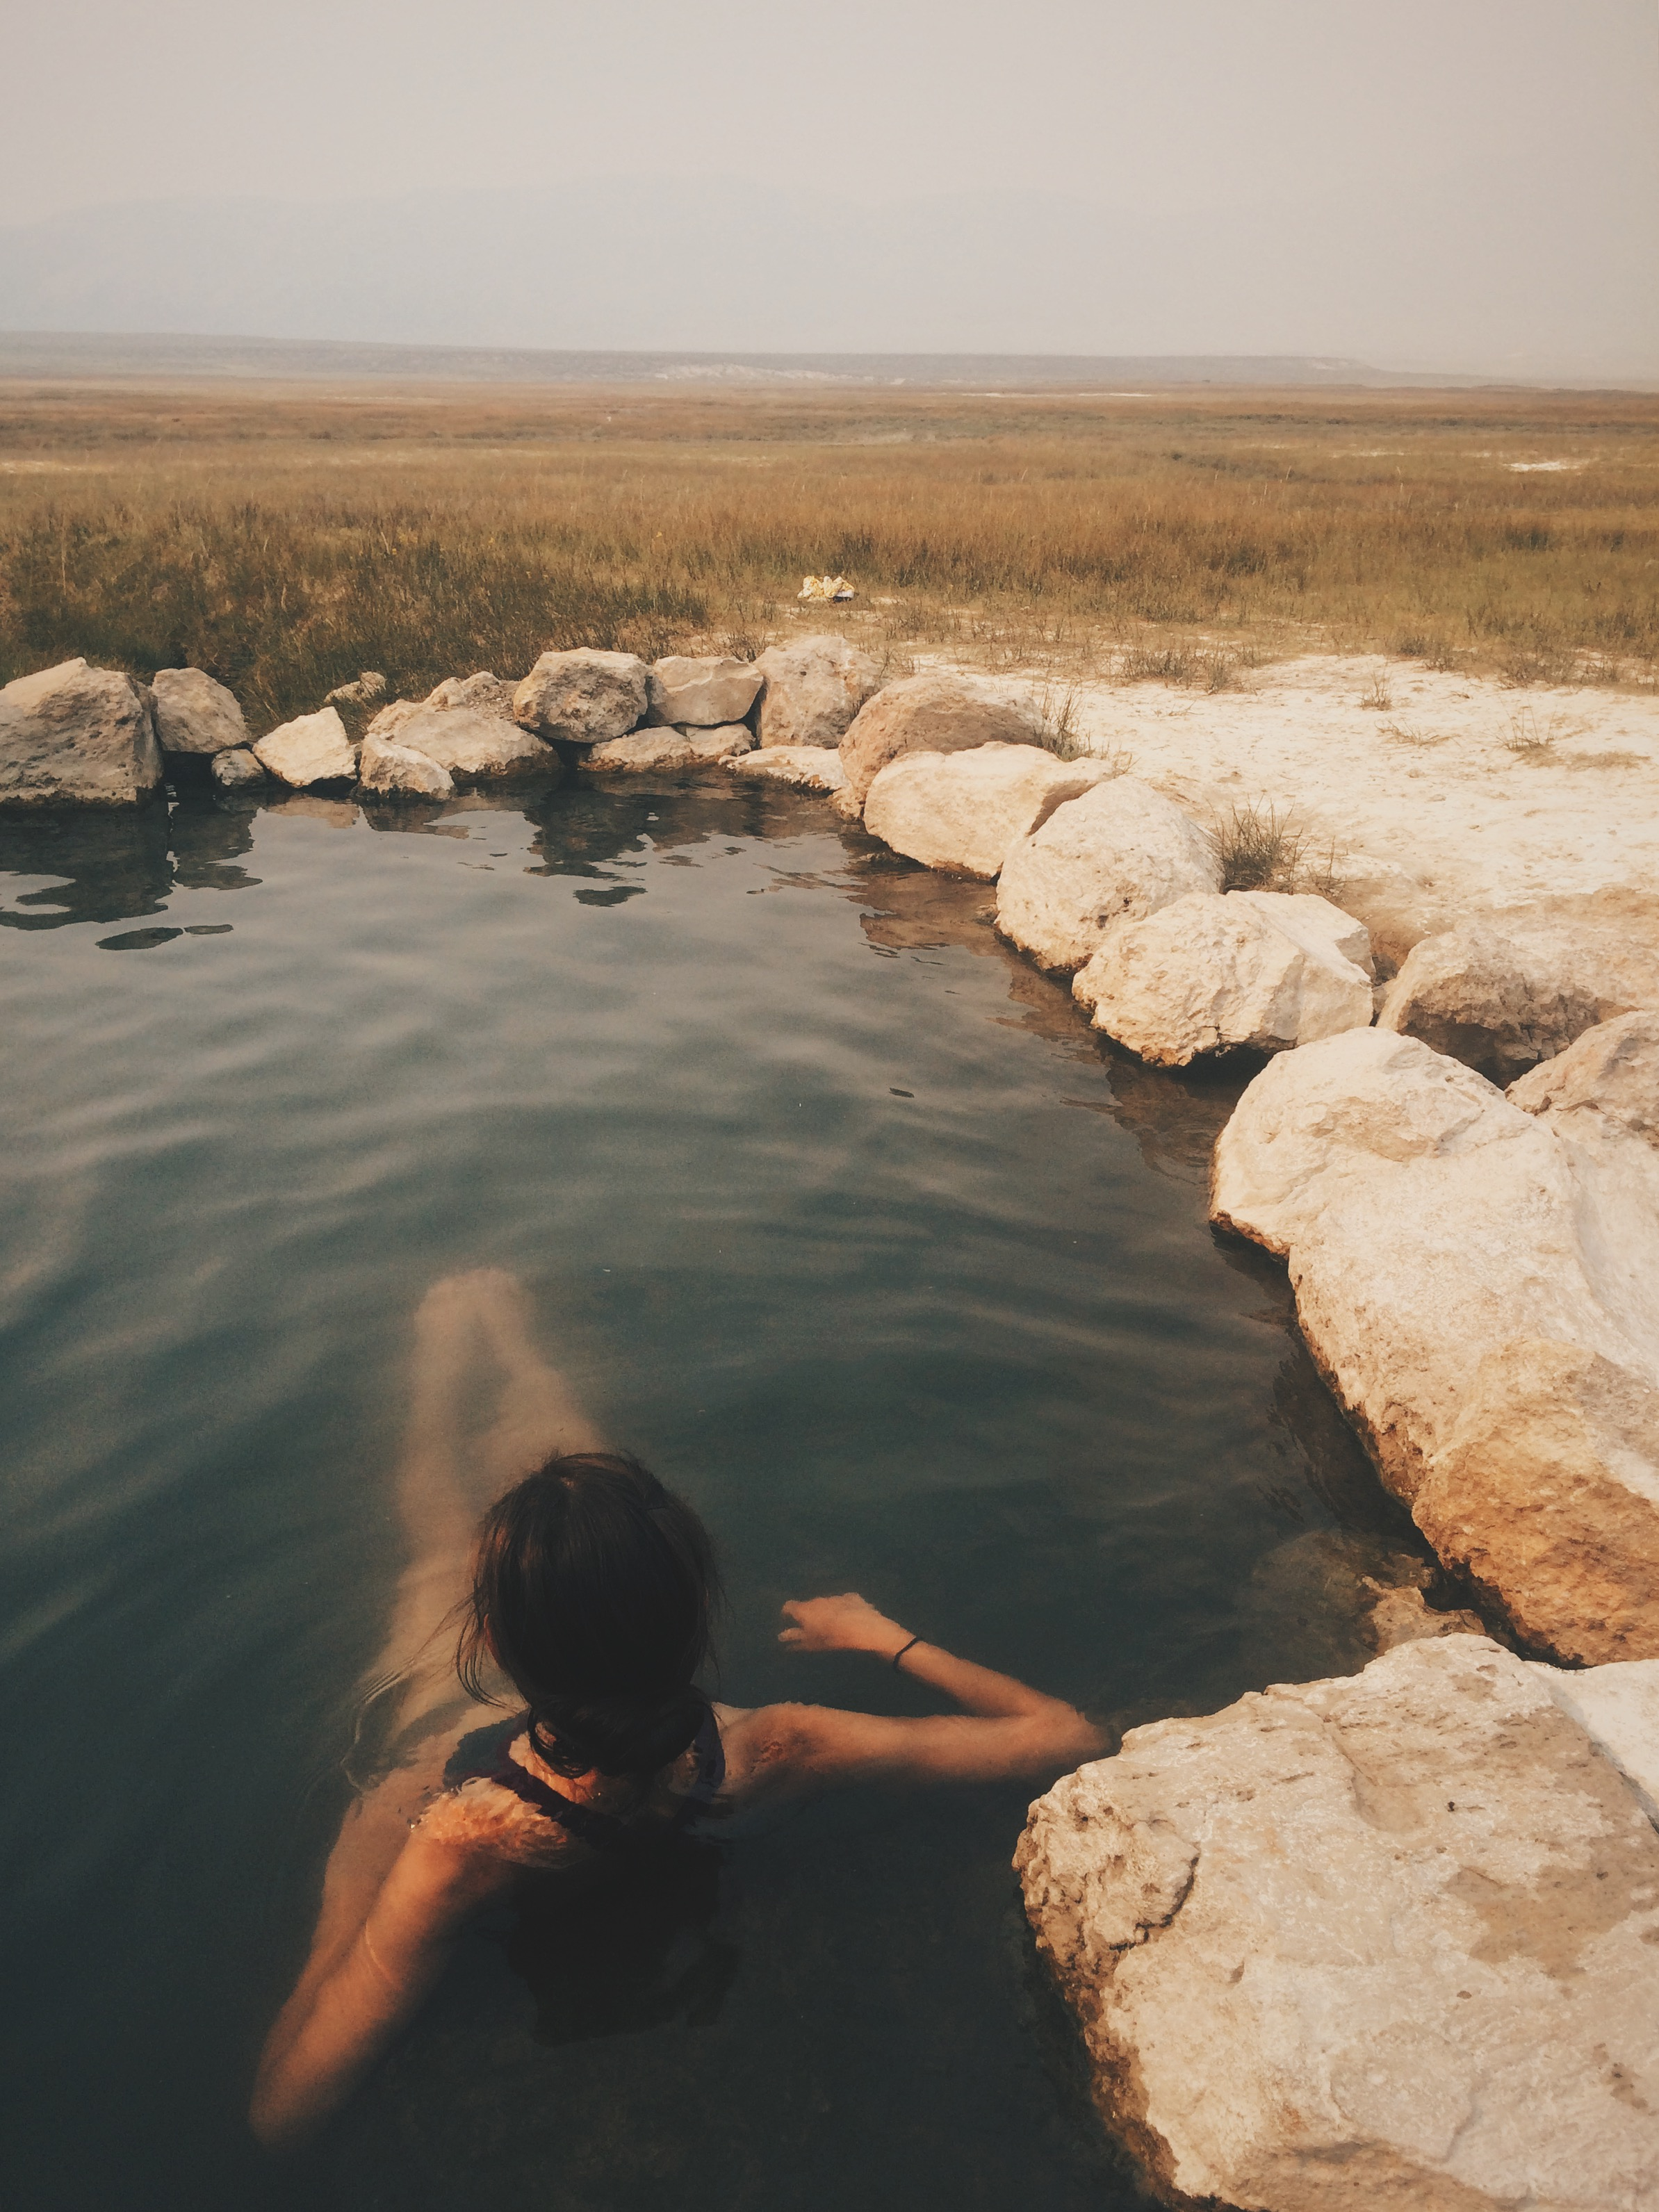 A well-deserved post-summit soak at Crowley Hot Springs in Owens Valley.